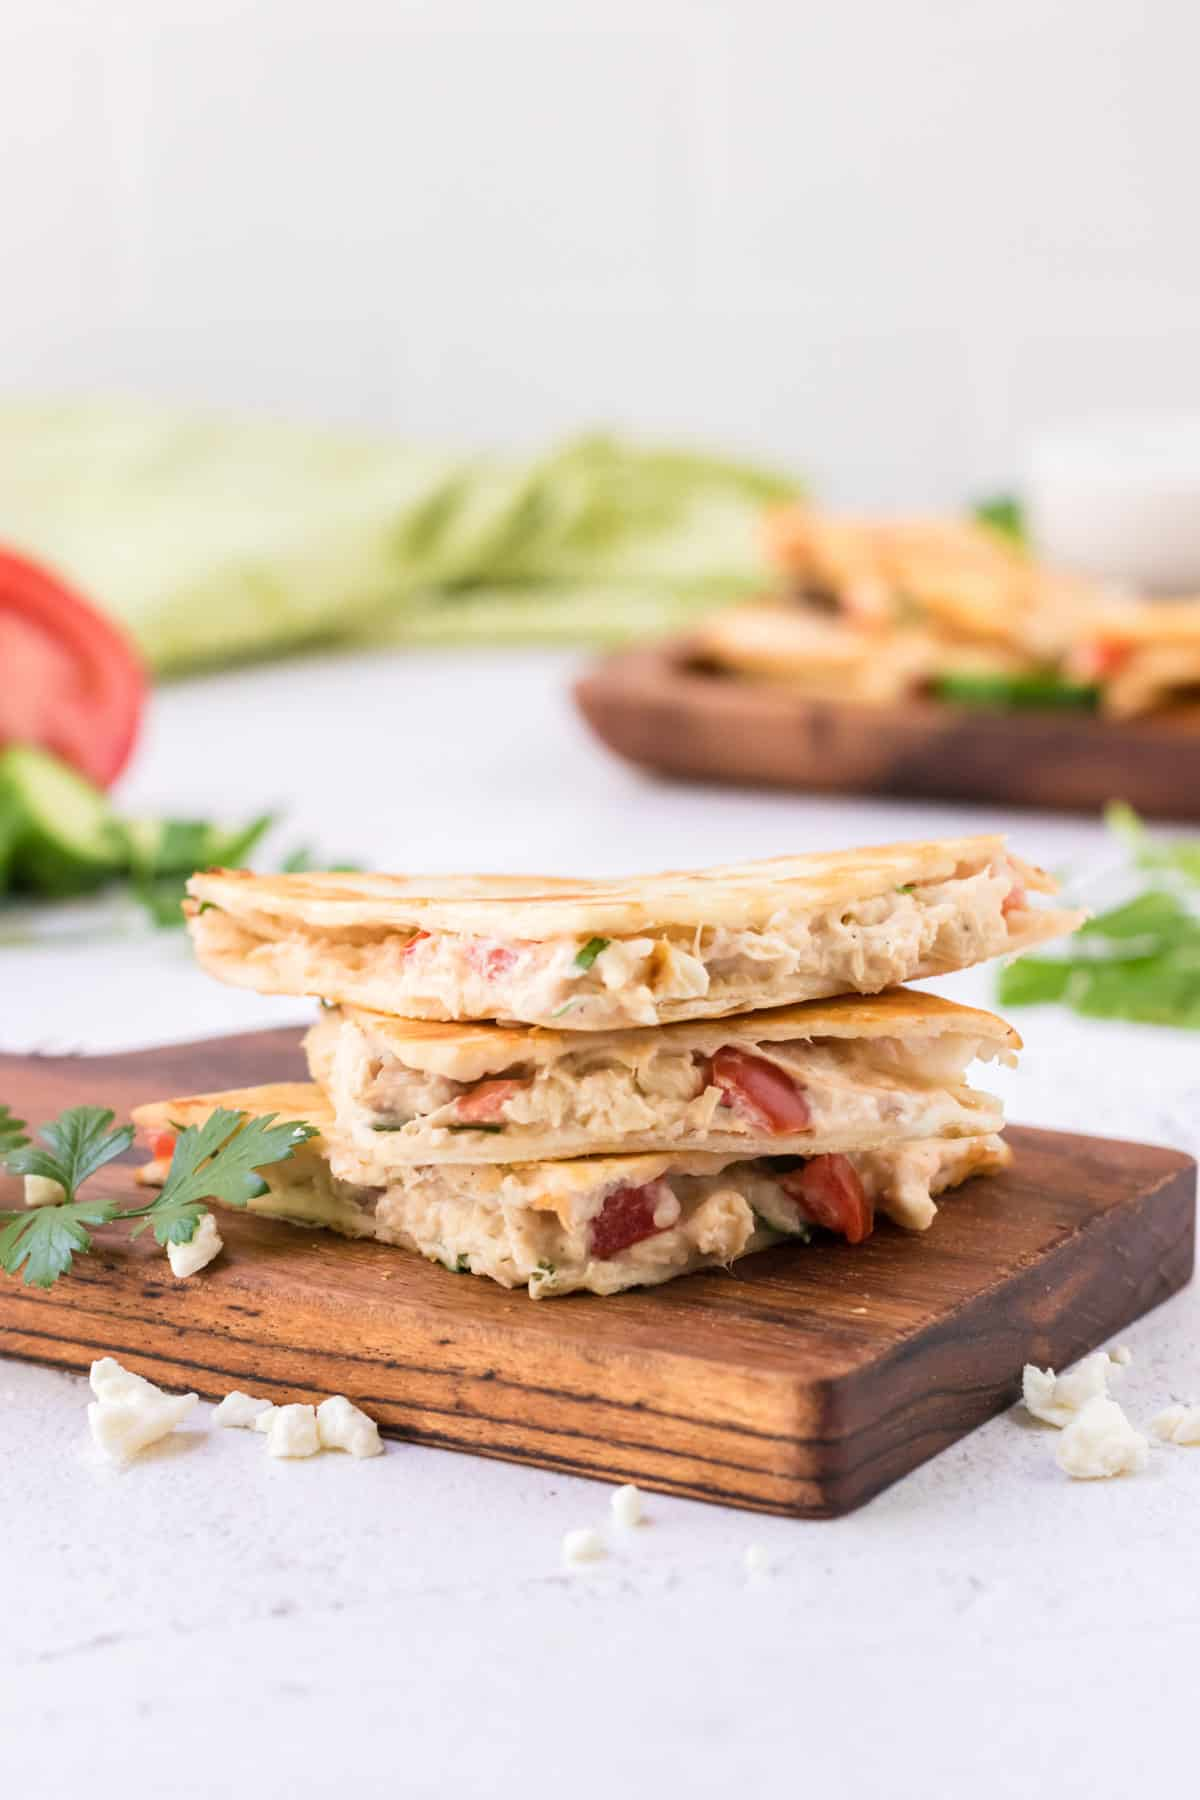 Wooden cutting board with stack of Greek quesadillas and tray of more quesadillas and green linen in background.